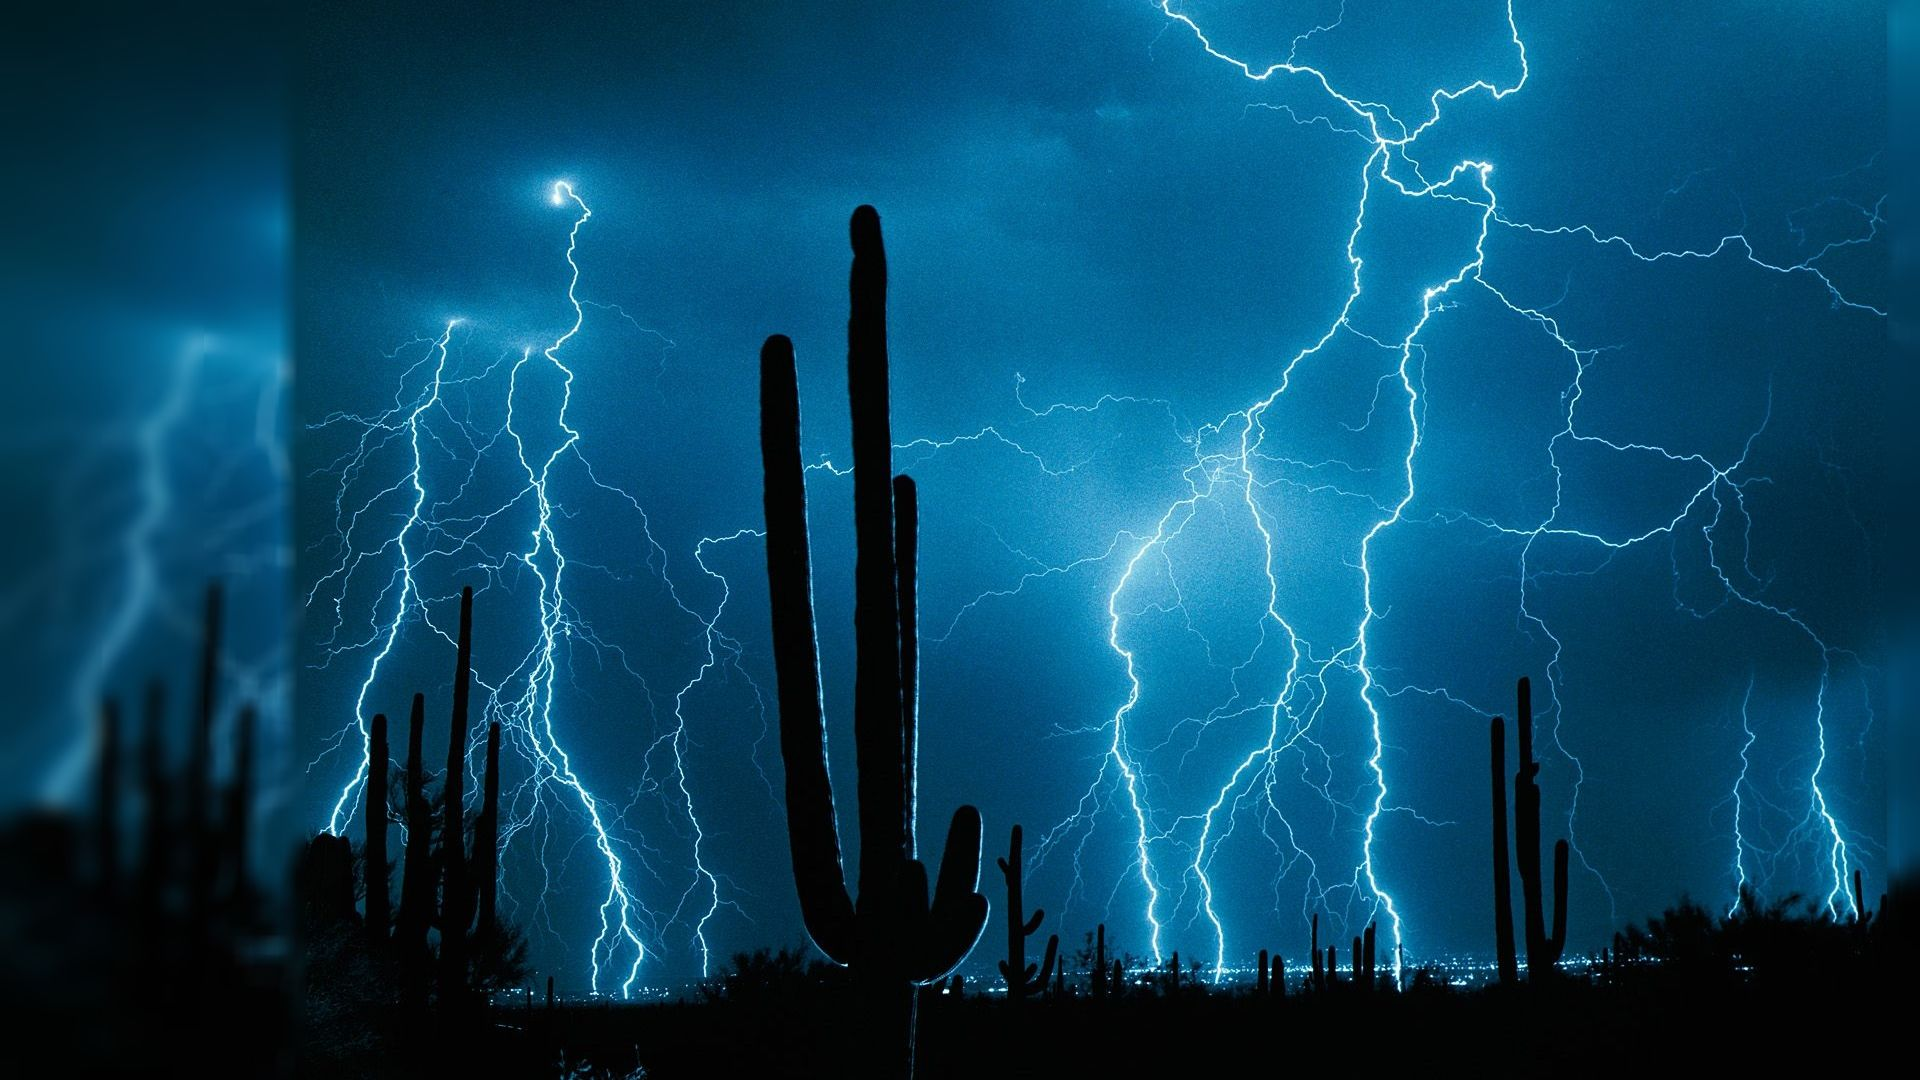 lightening storm over the desert | 40 Live Wallpapers In ...